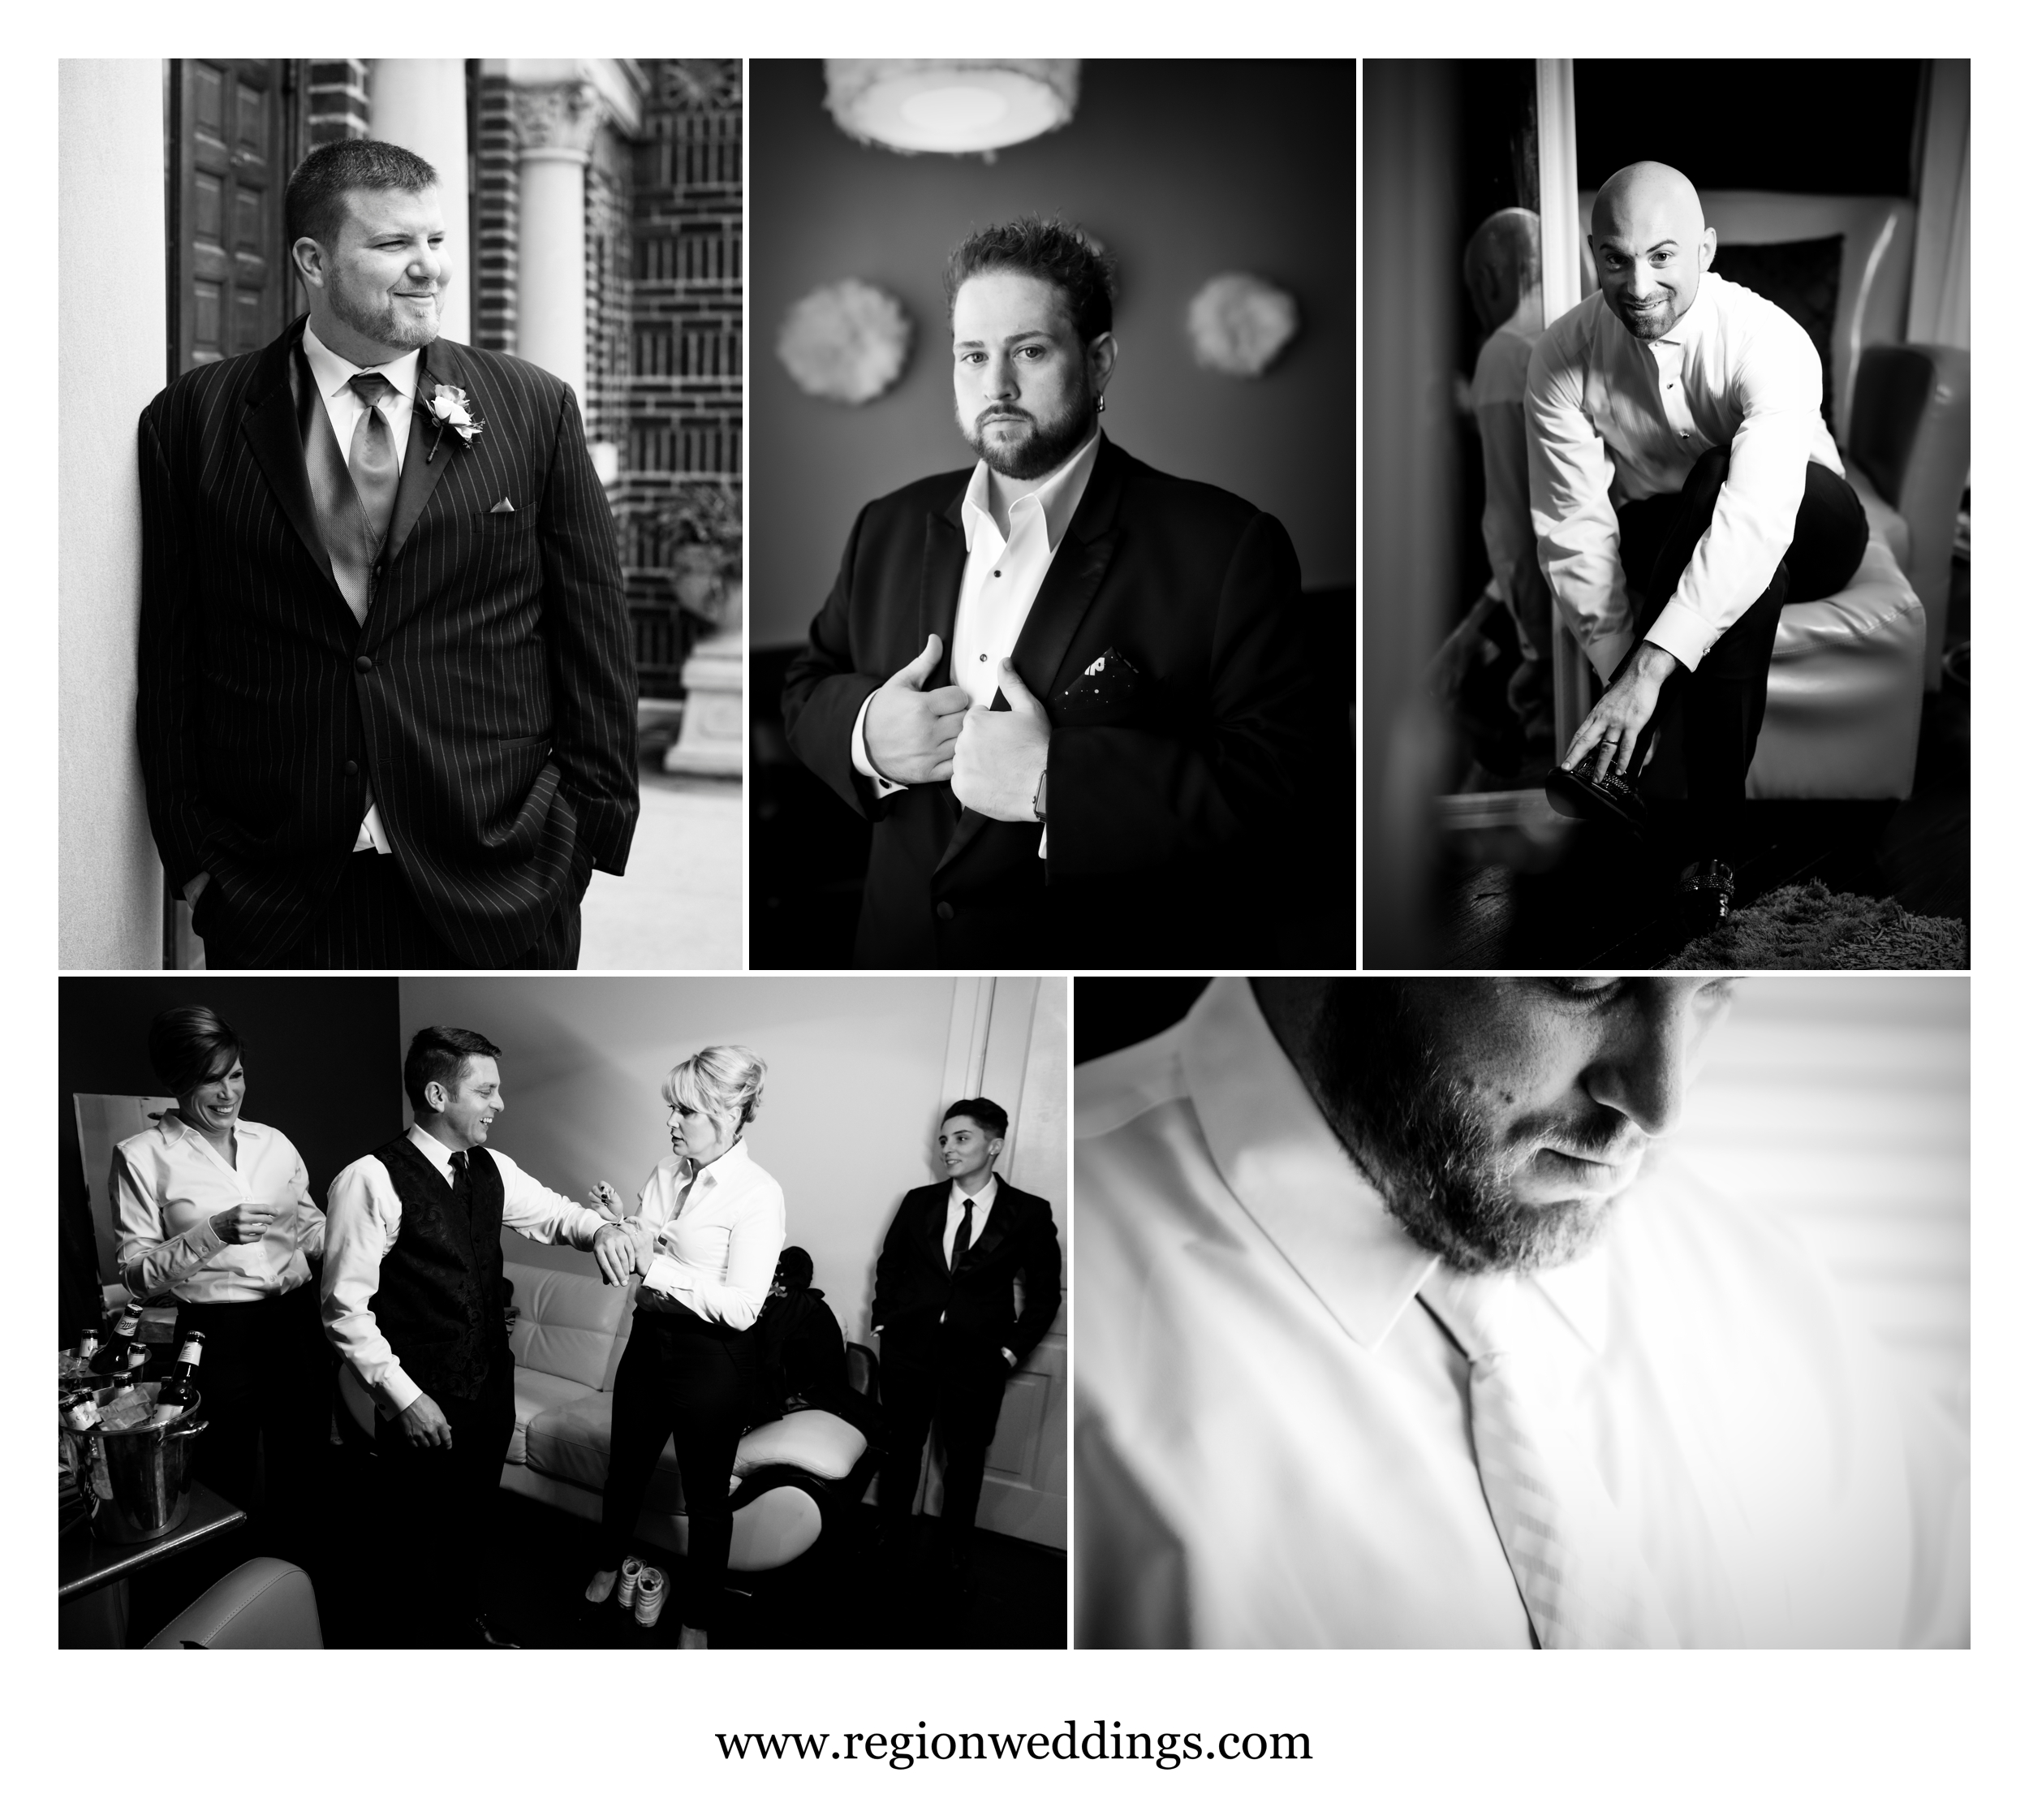 Groom getting ready photos in black and white.